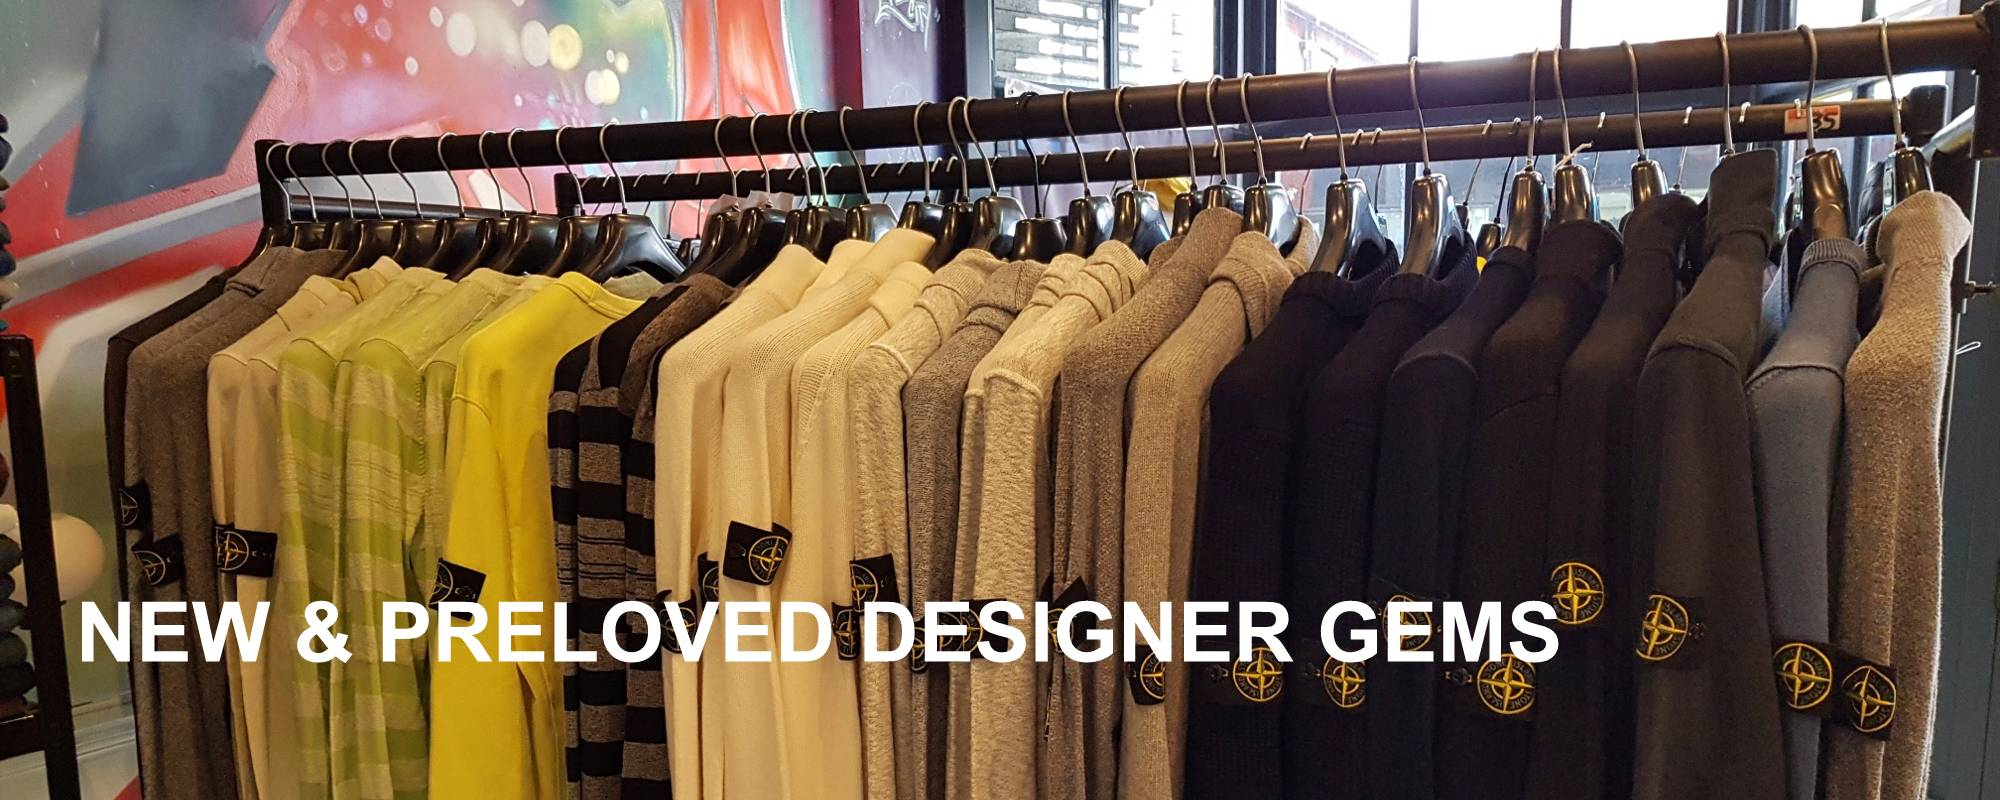 Men's Clothing - New & Preloved Designer Gems from Gallagher's Clothing, Bournemouth, England, UK